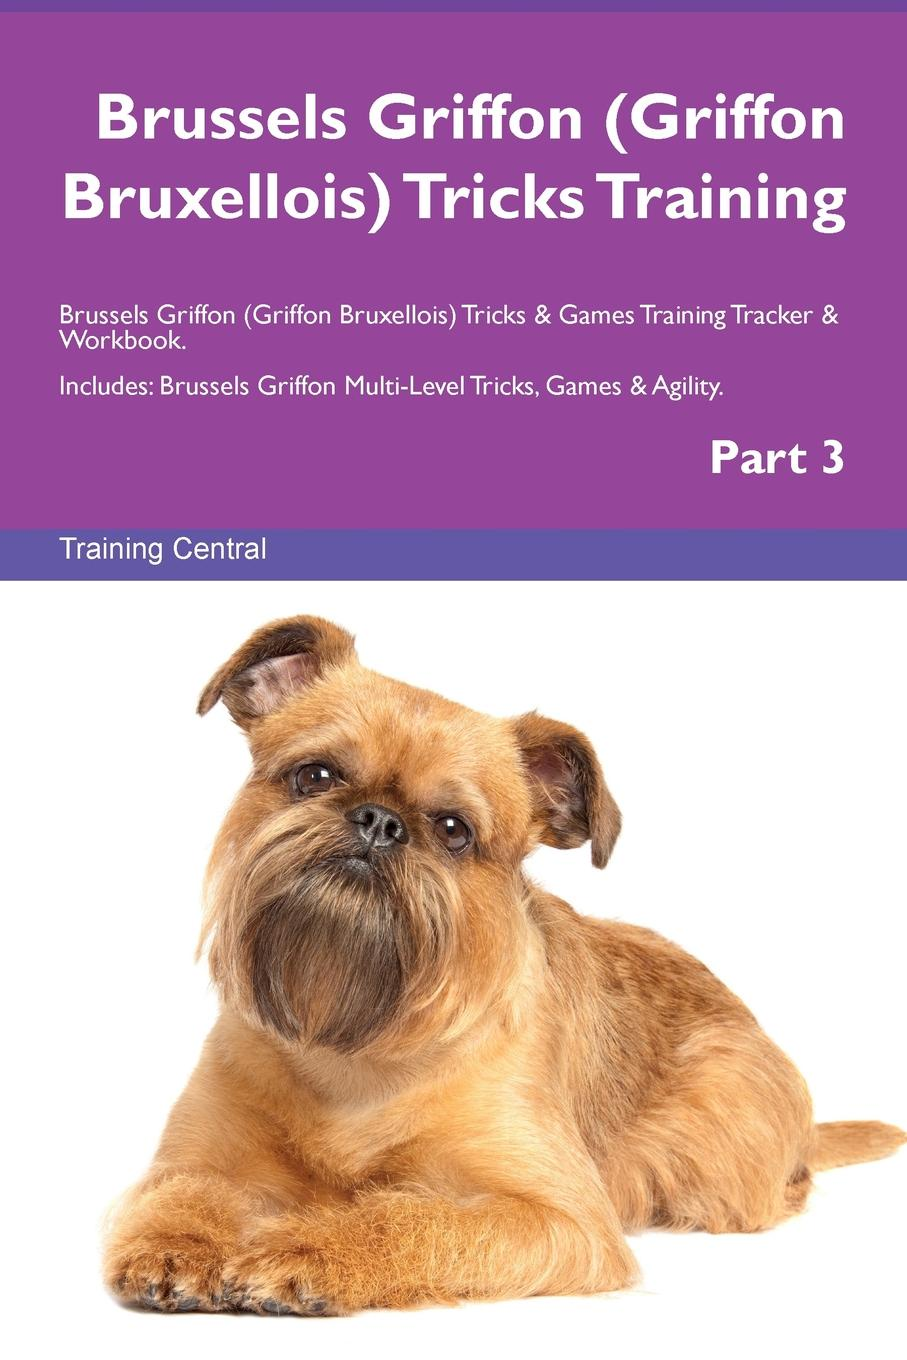 Training Central Brussels Griffon (Griffon Bruxellois) Tricks Training Brussels Griffon (Griffon Bruxellois) Tricks & Games Training Tracker & Workbook. Includes. Brussels Griffon Multi-Level Tricks, Games & Agility. Part 3 brussels type